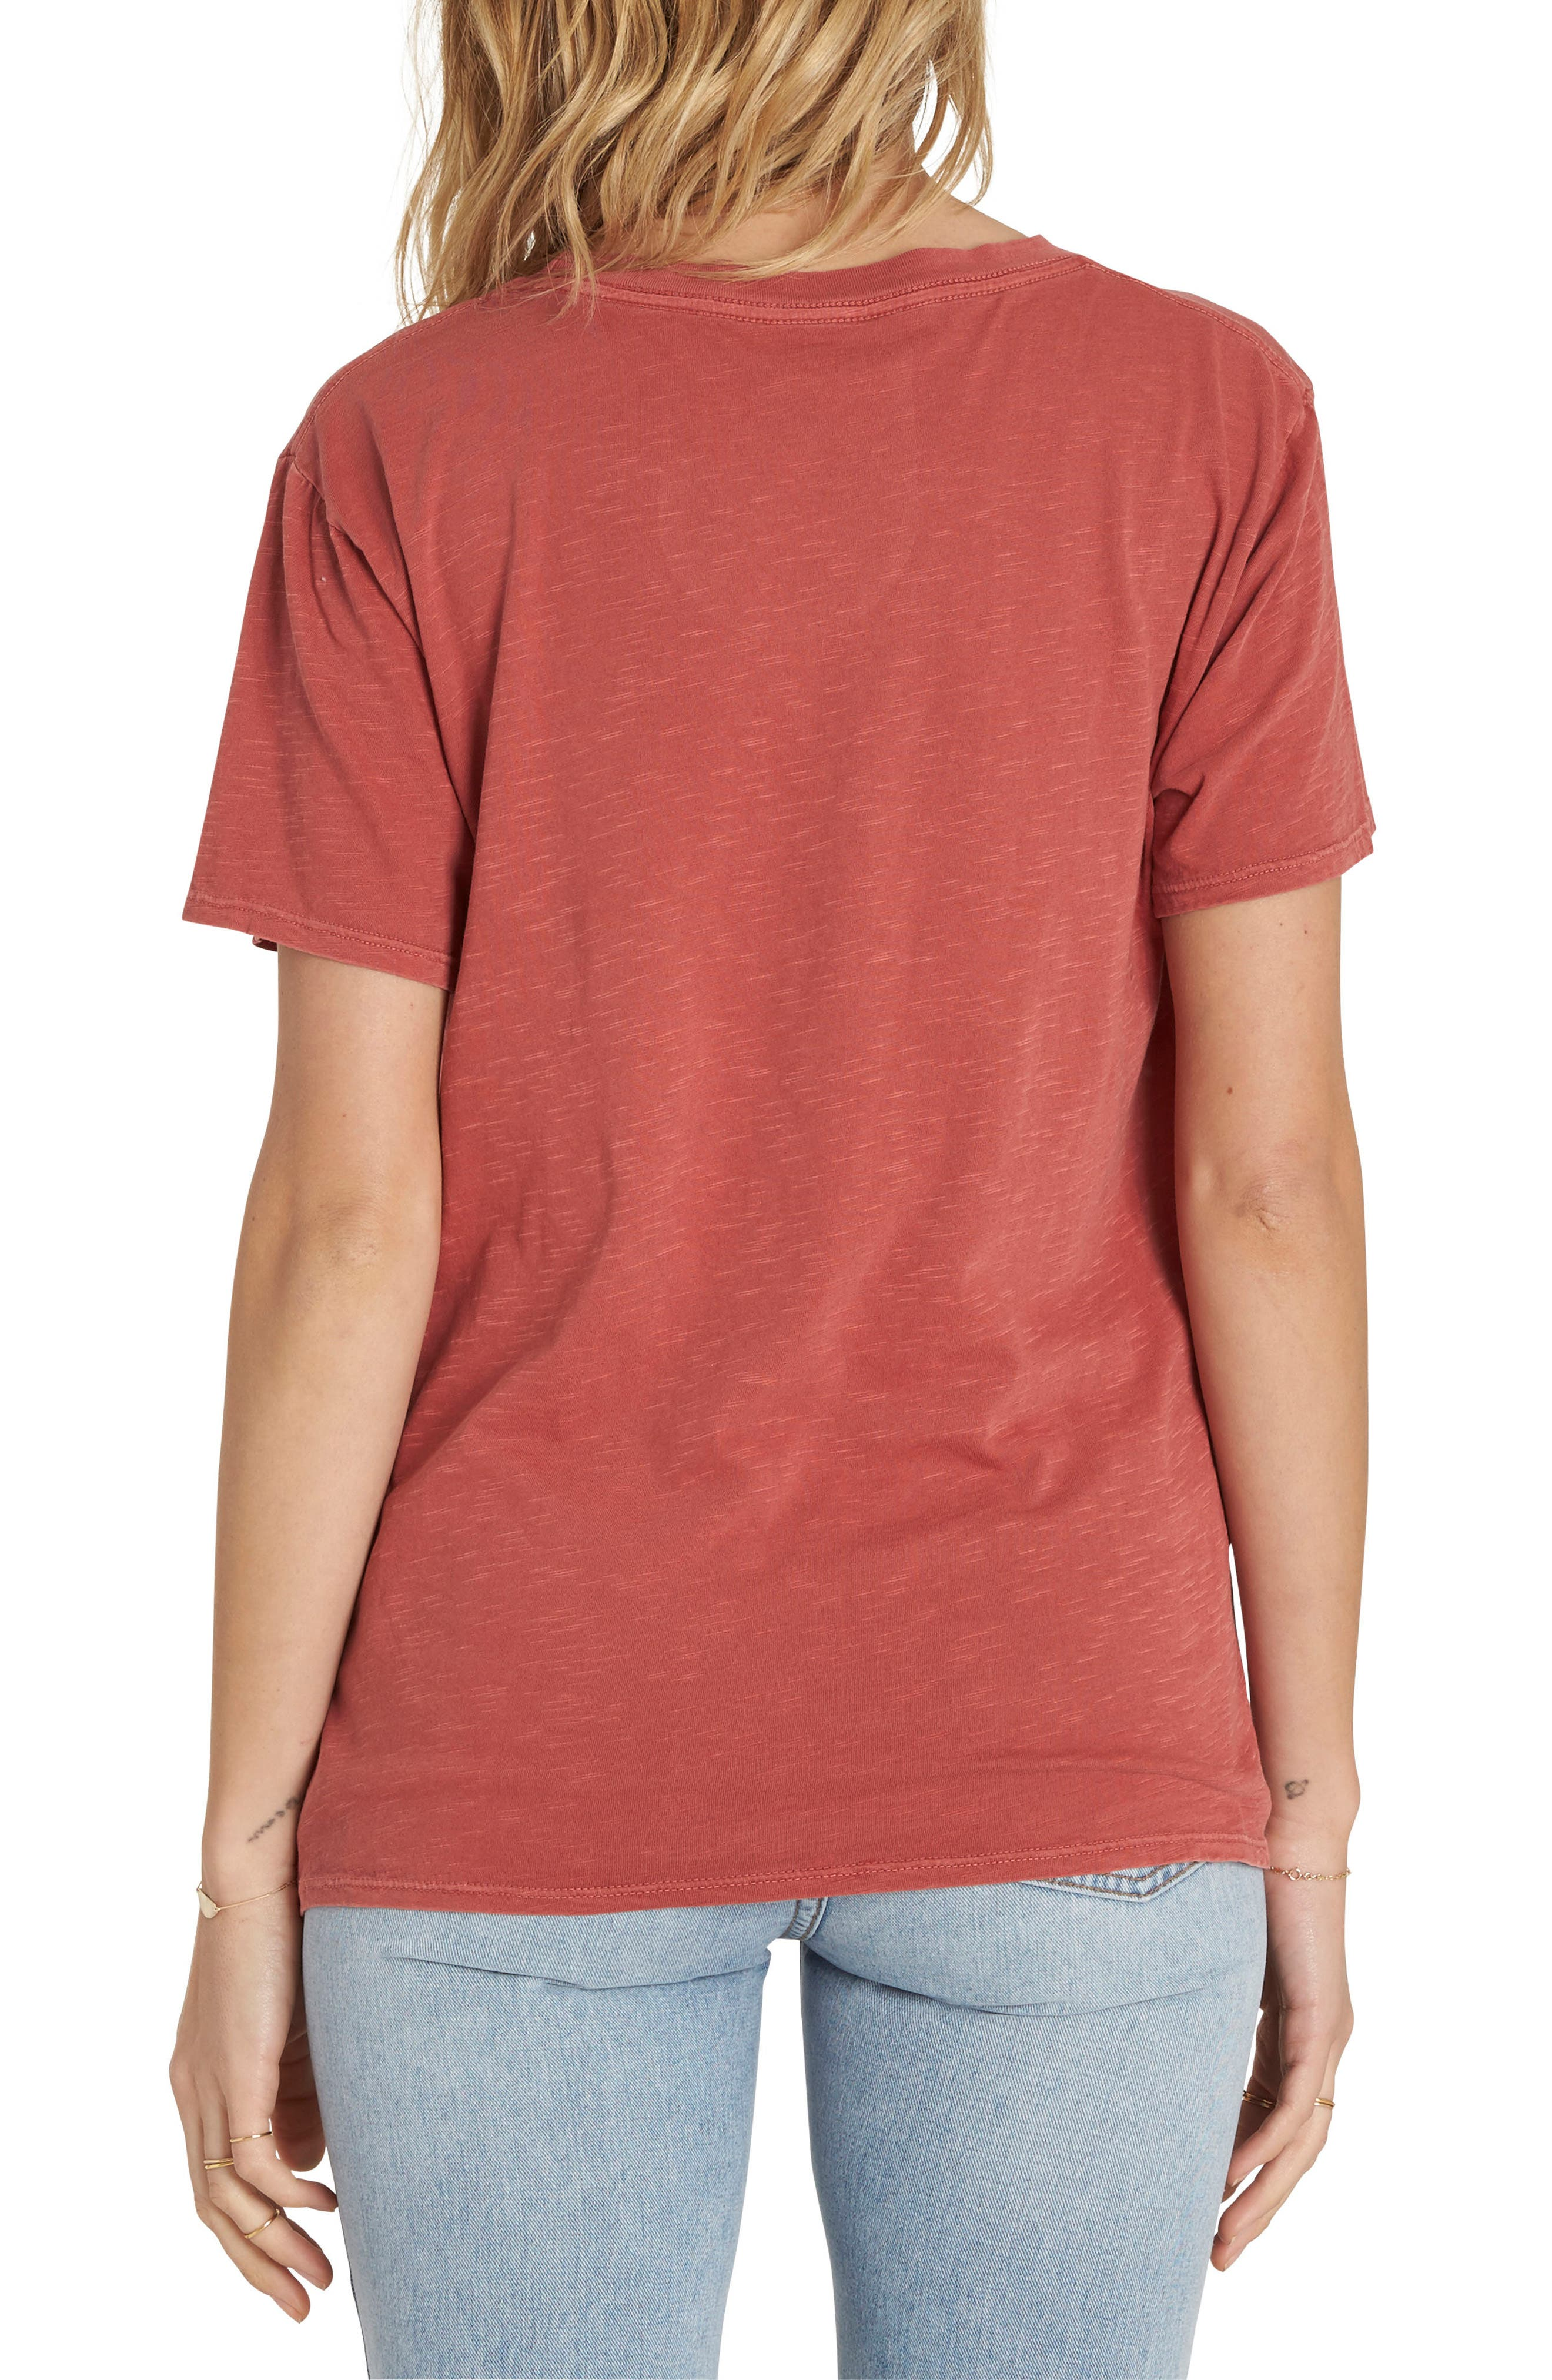 Sunset In the West Graphic Tee,                             Alternate thumbnail 2, color,                             Sienna